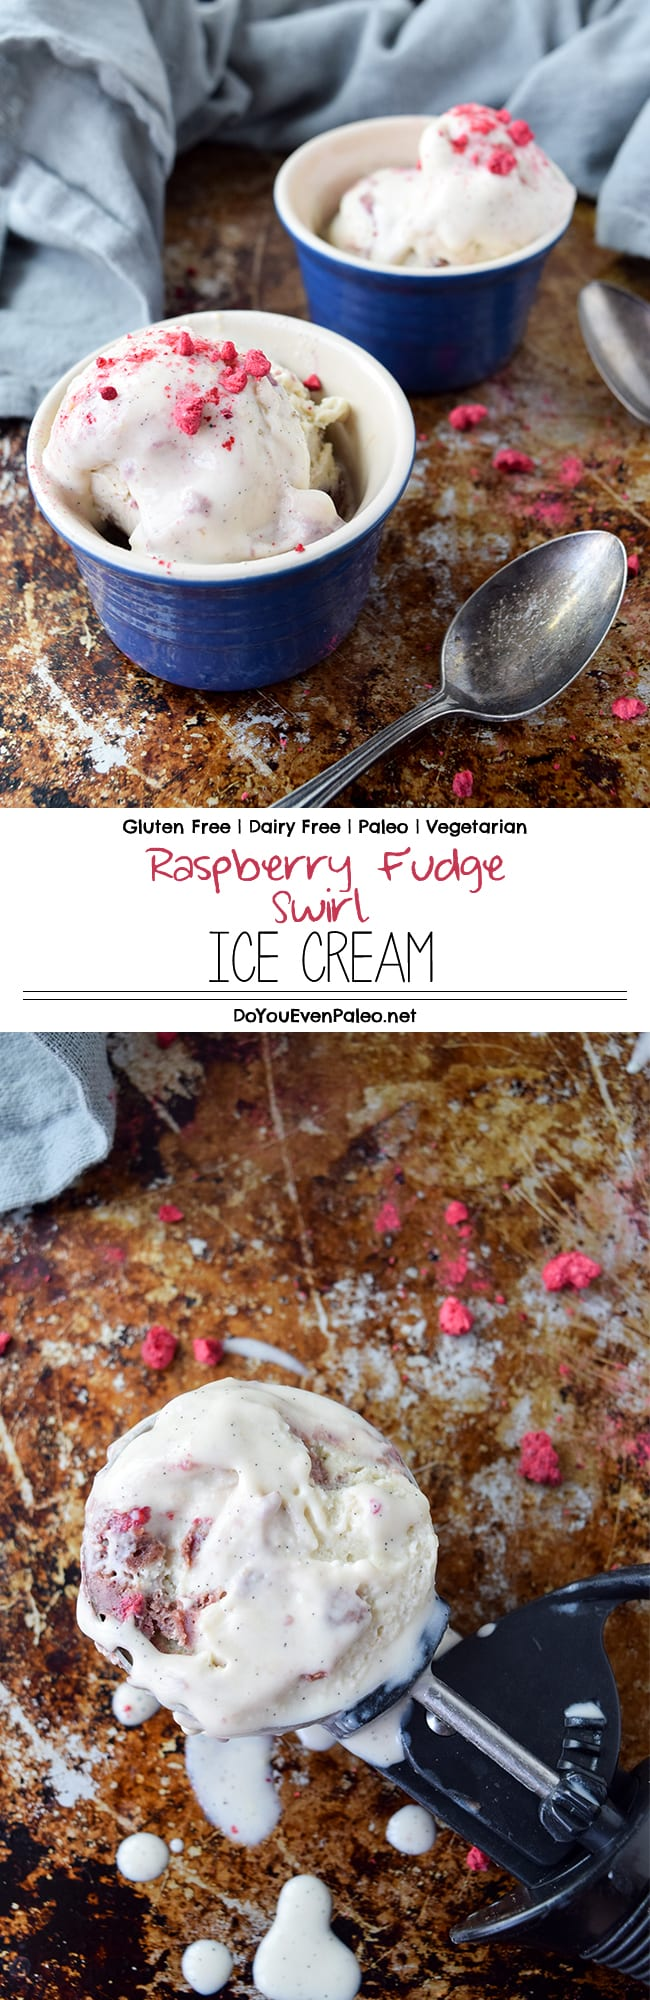 Raspberry Fudge Swirl Ice Cream - a dairy free, gluten free, paleo and vegetarian ice cream using freeze-dried raspberries for the best pop of summer flavor! | DoYouEvenPaleo.net